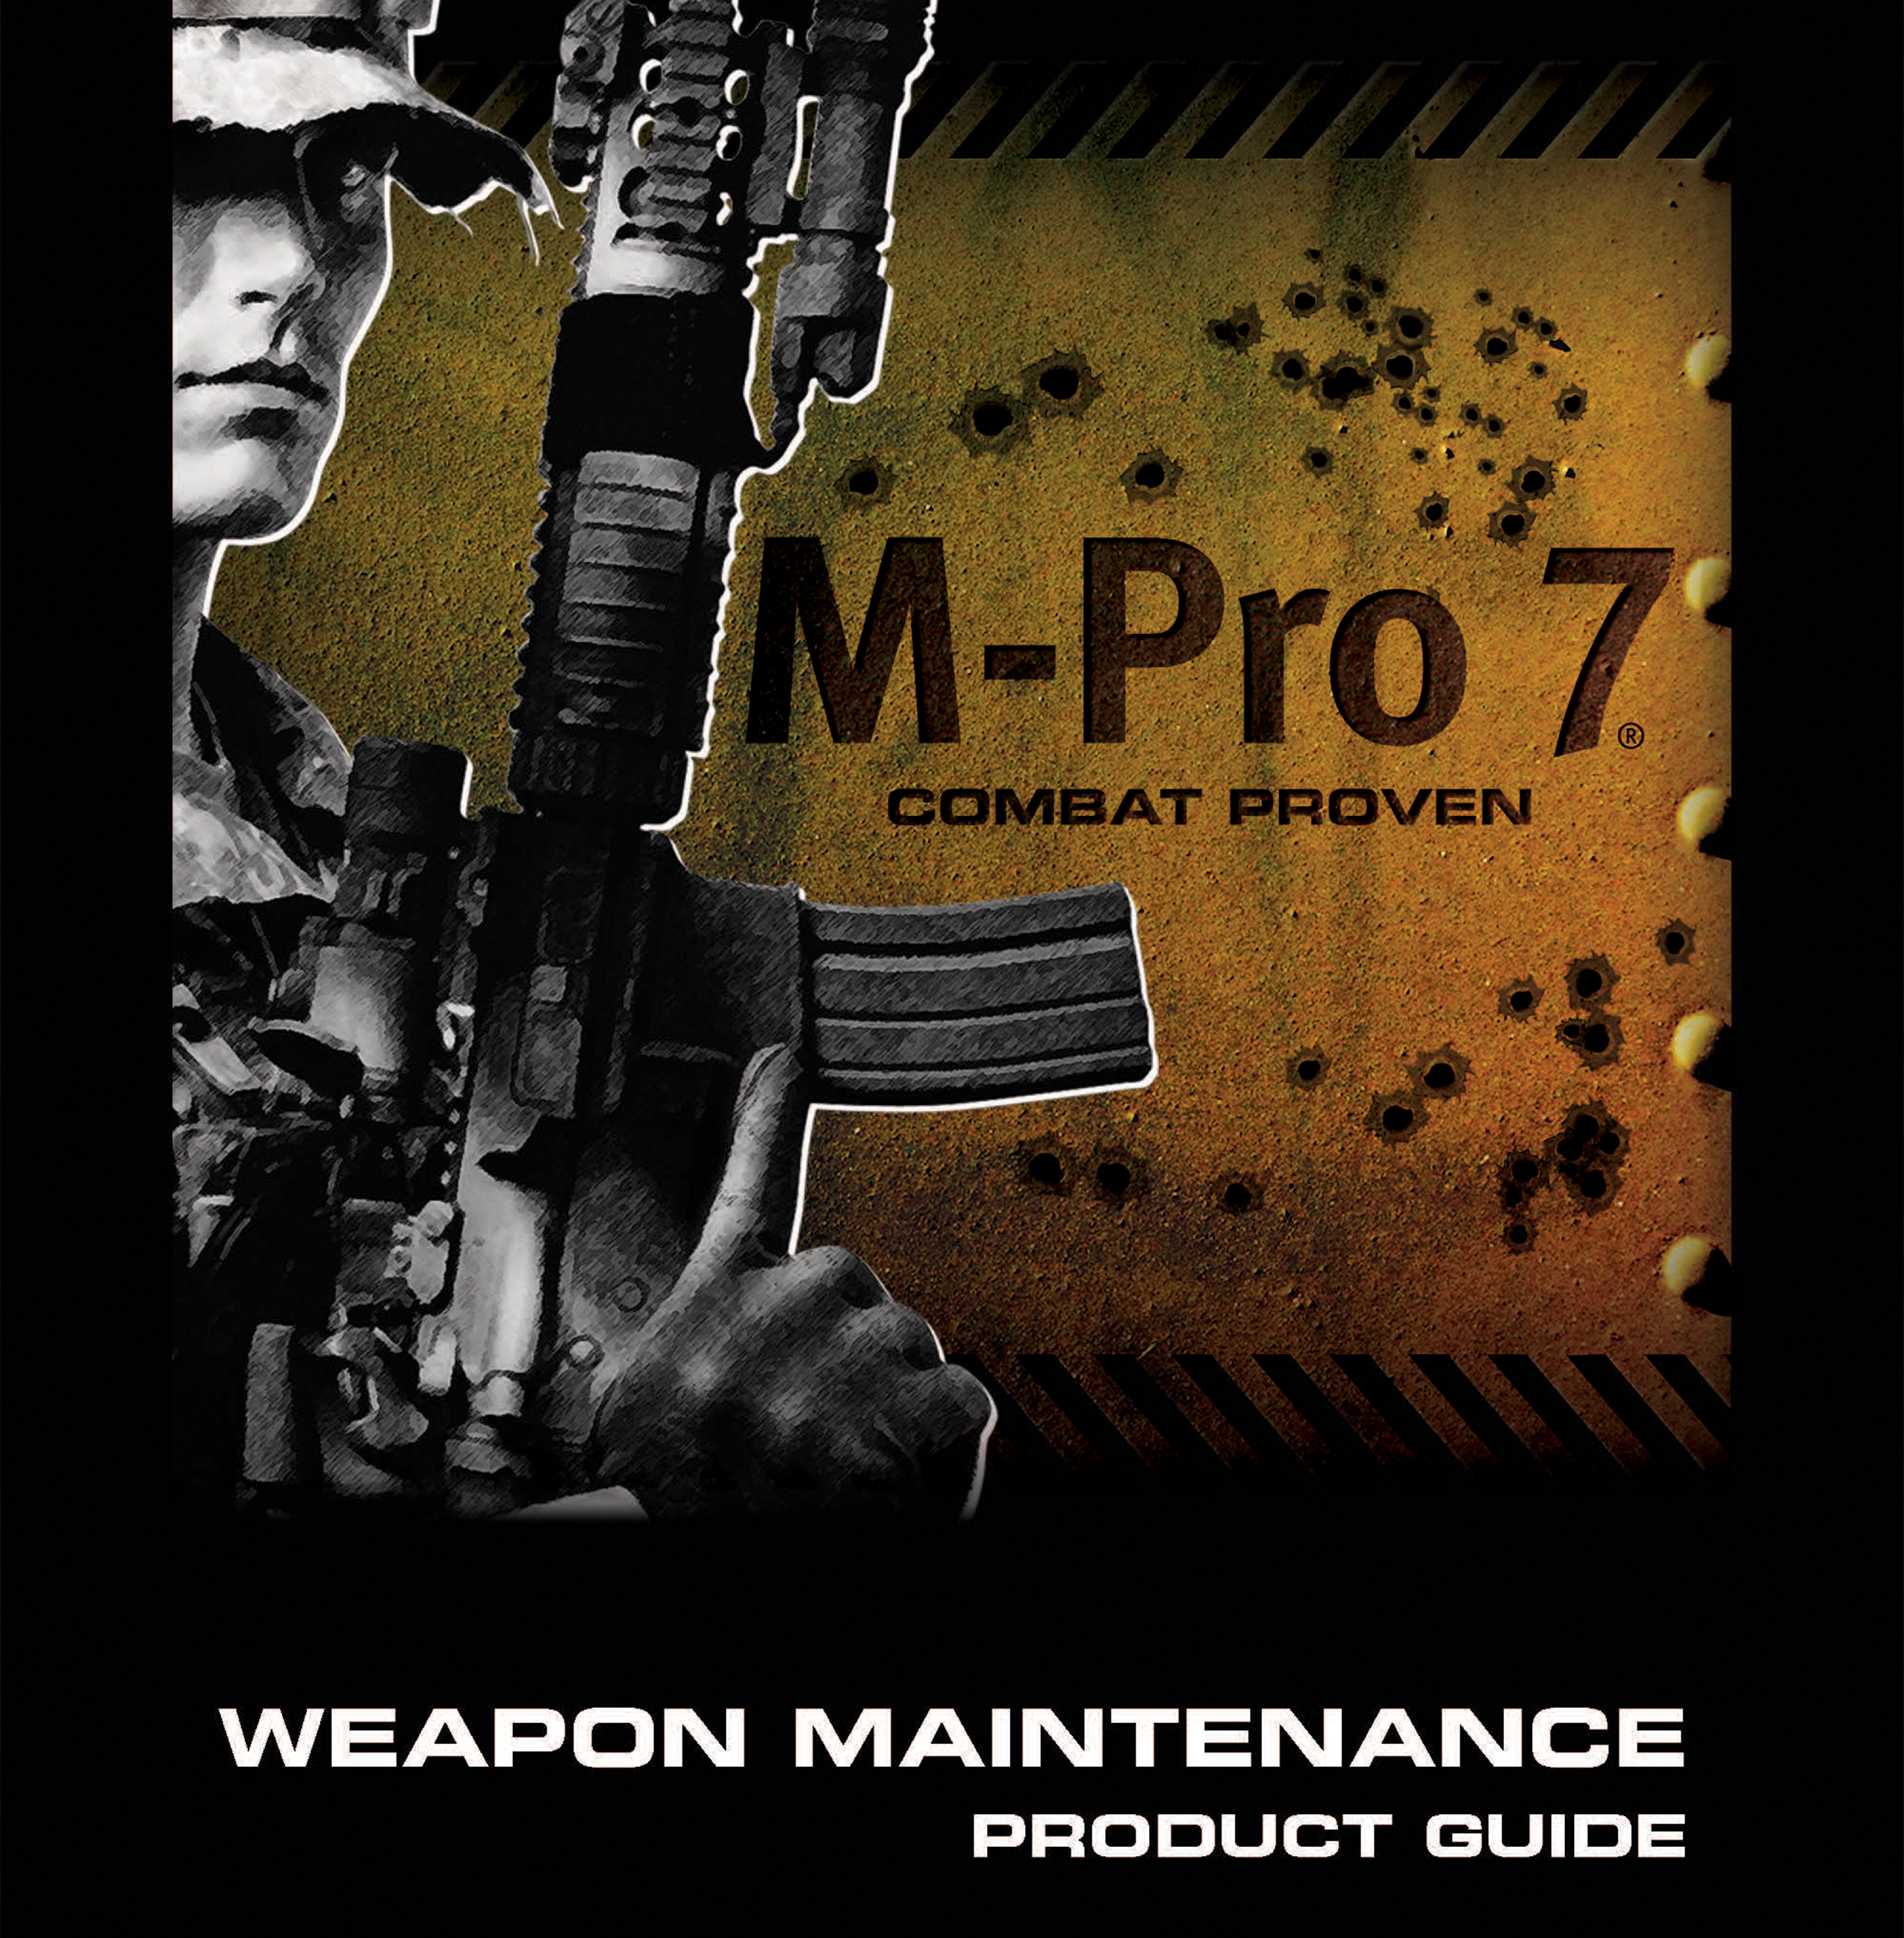 M-Pro 7 Weapon Maintenance Product Guide